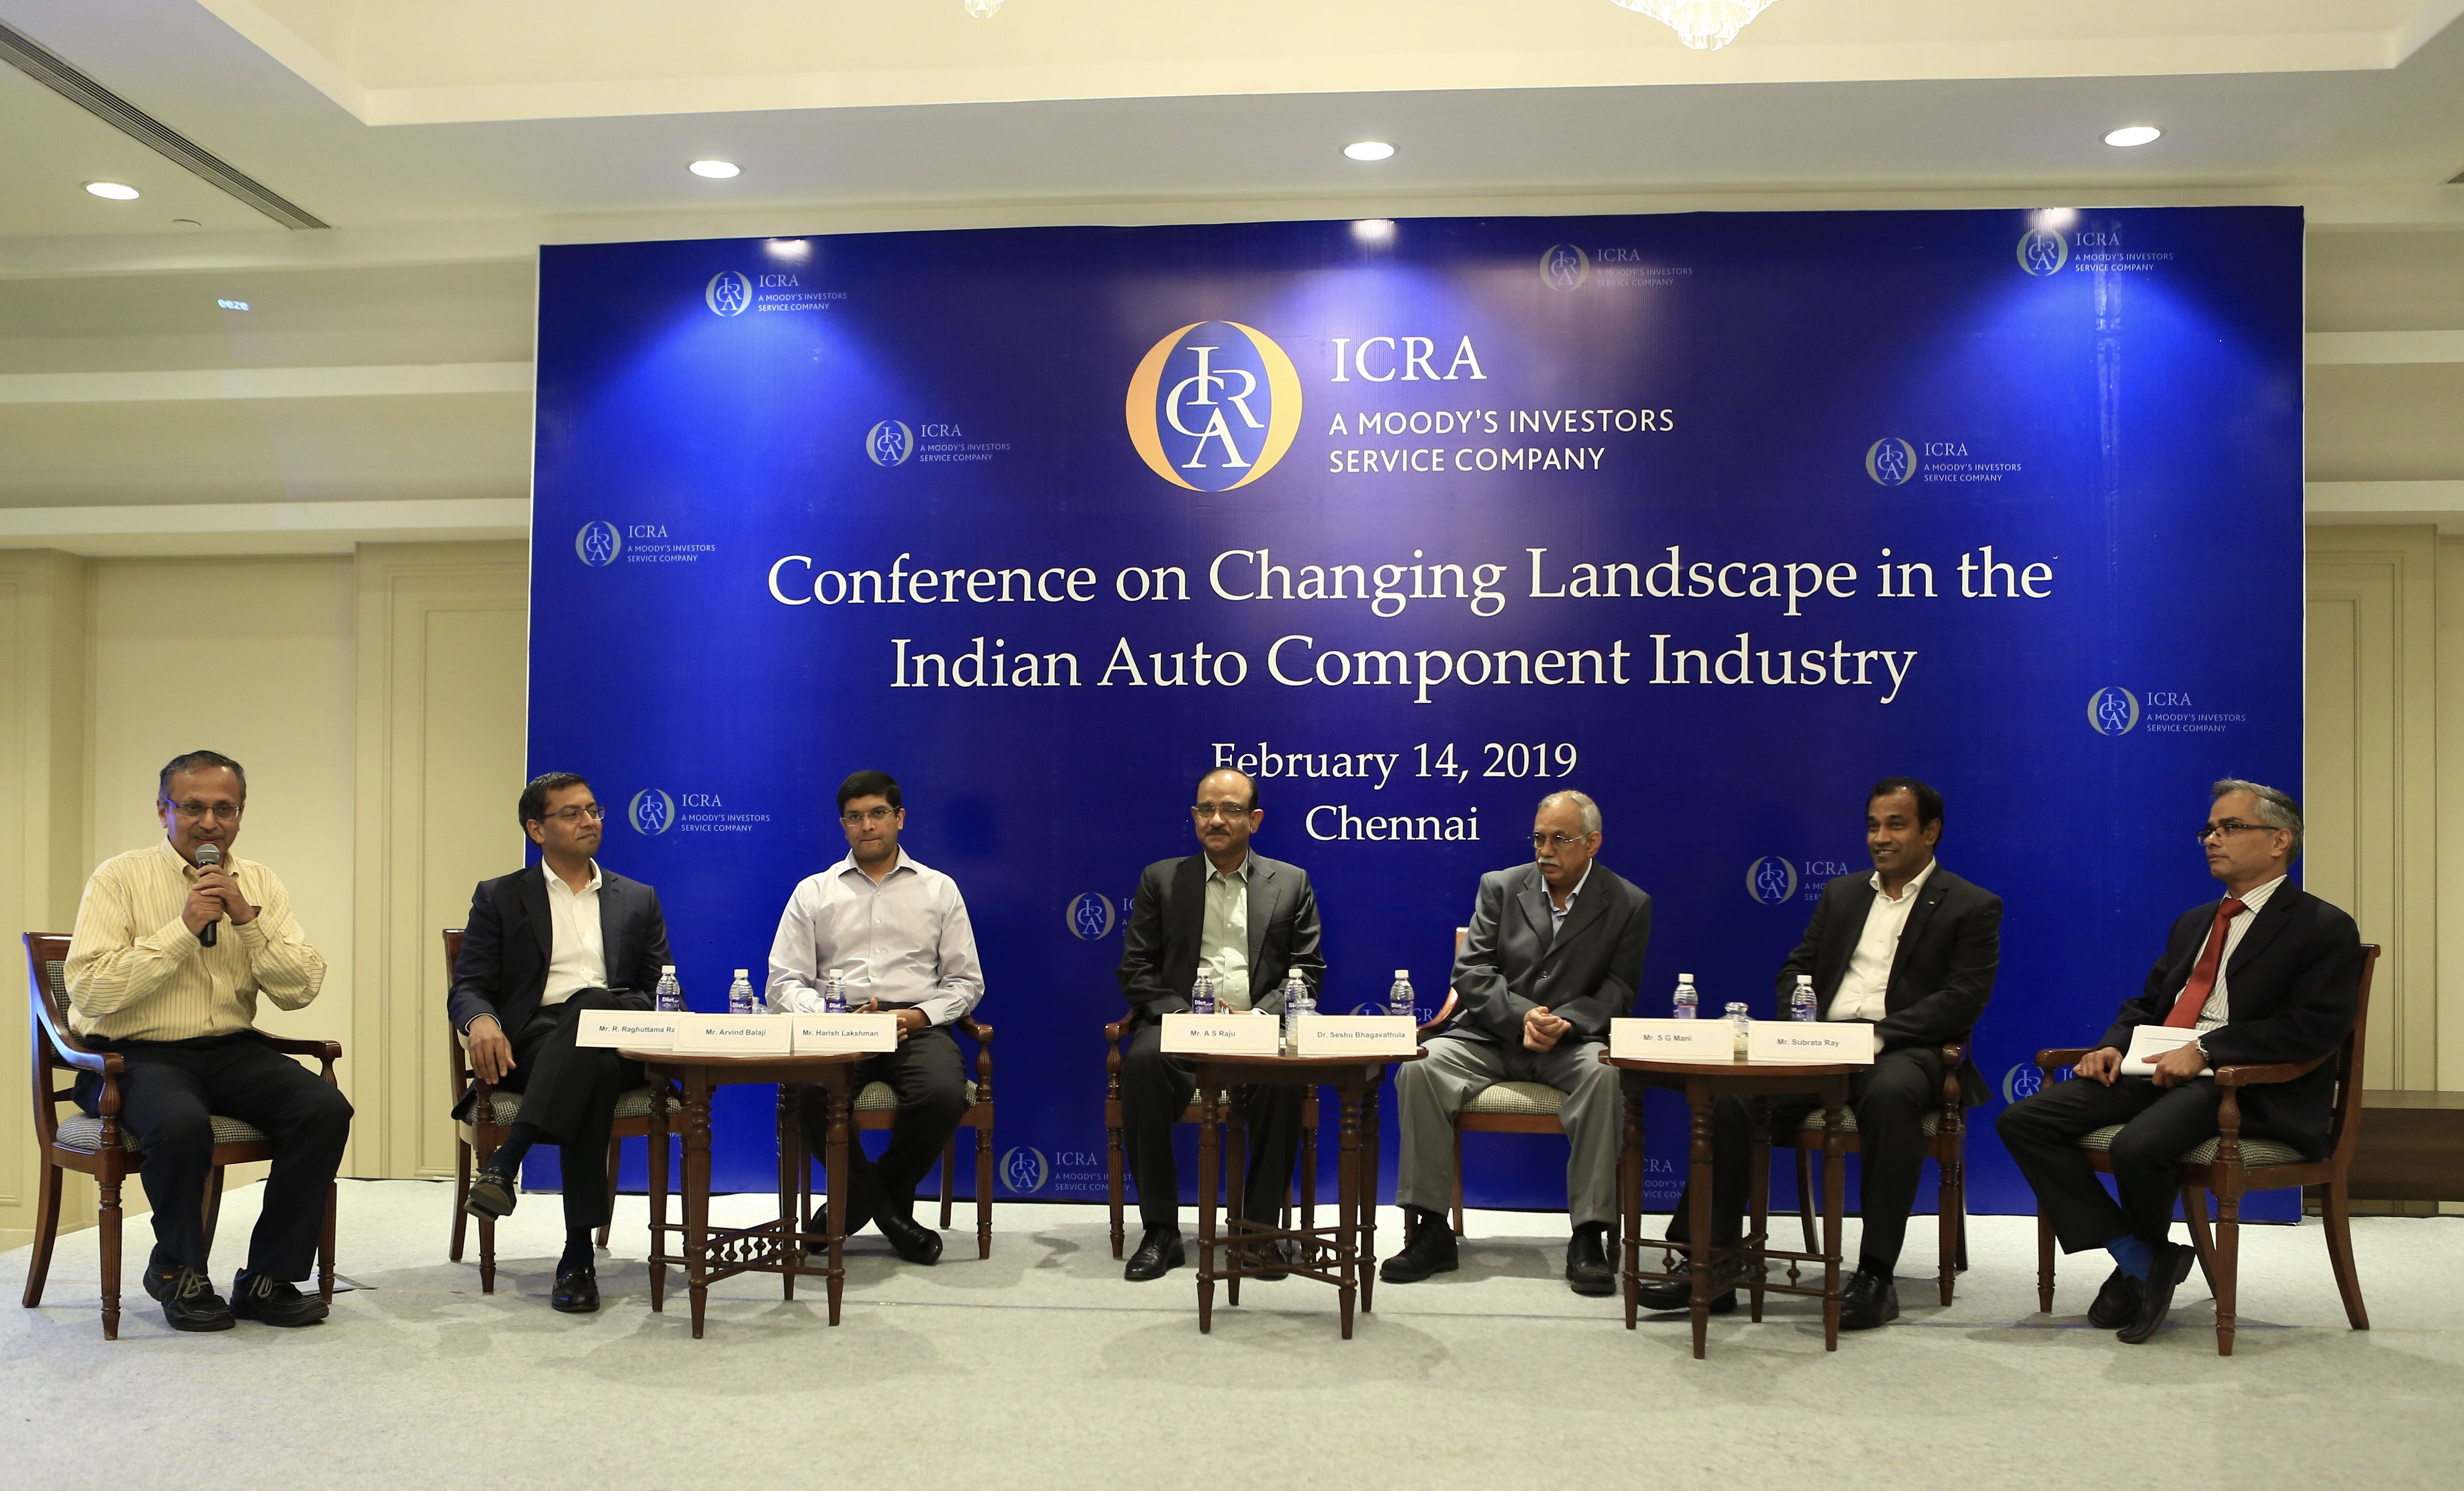 (L-R) Mr. R. Raghuttama Rao (Moderator), Mr. Arvind Balaji, Mr. Harish Lakshman, Mr. A.S. Raju, Dr. Seshu Bhagavathula, Mr. S.G. Mani, Mr. Subrata Ray in an intriguing panel discussion during Conference on 'Changing Landscape in the Indian Auto Component Industry' in Chennai